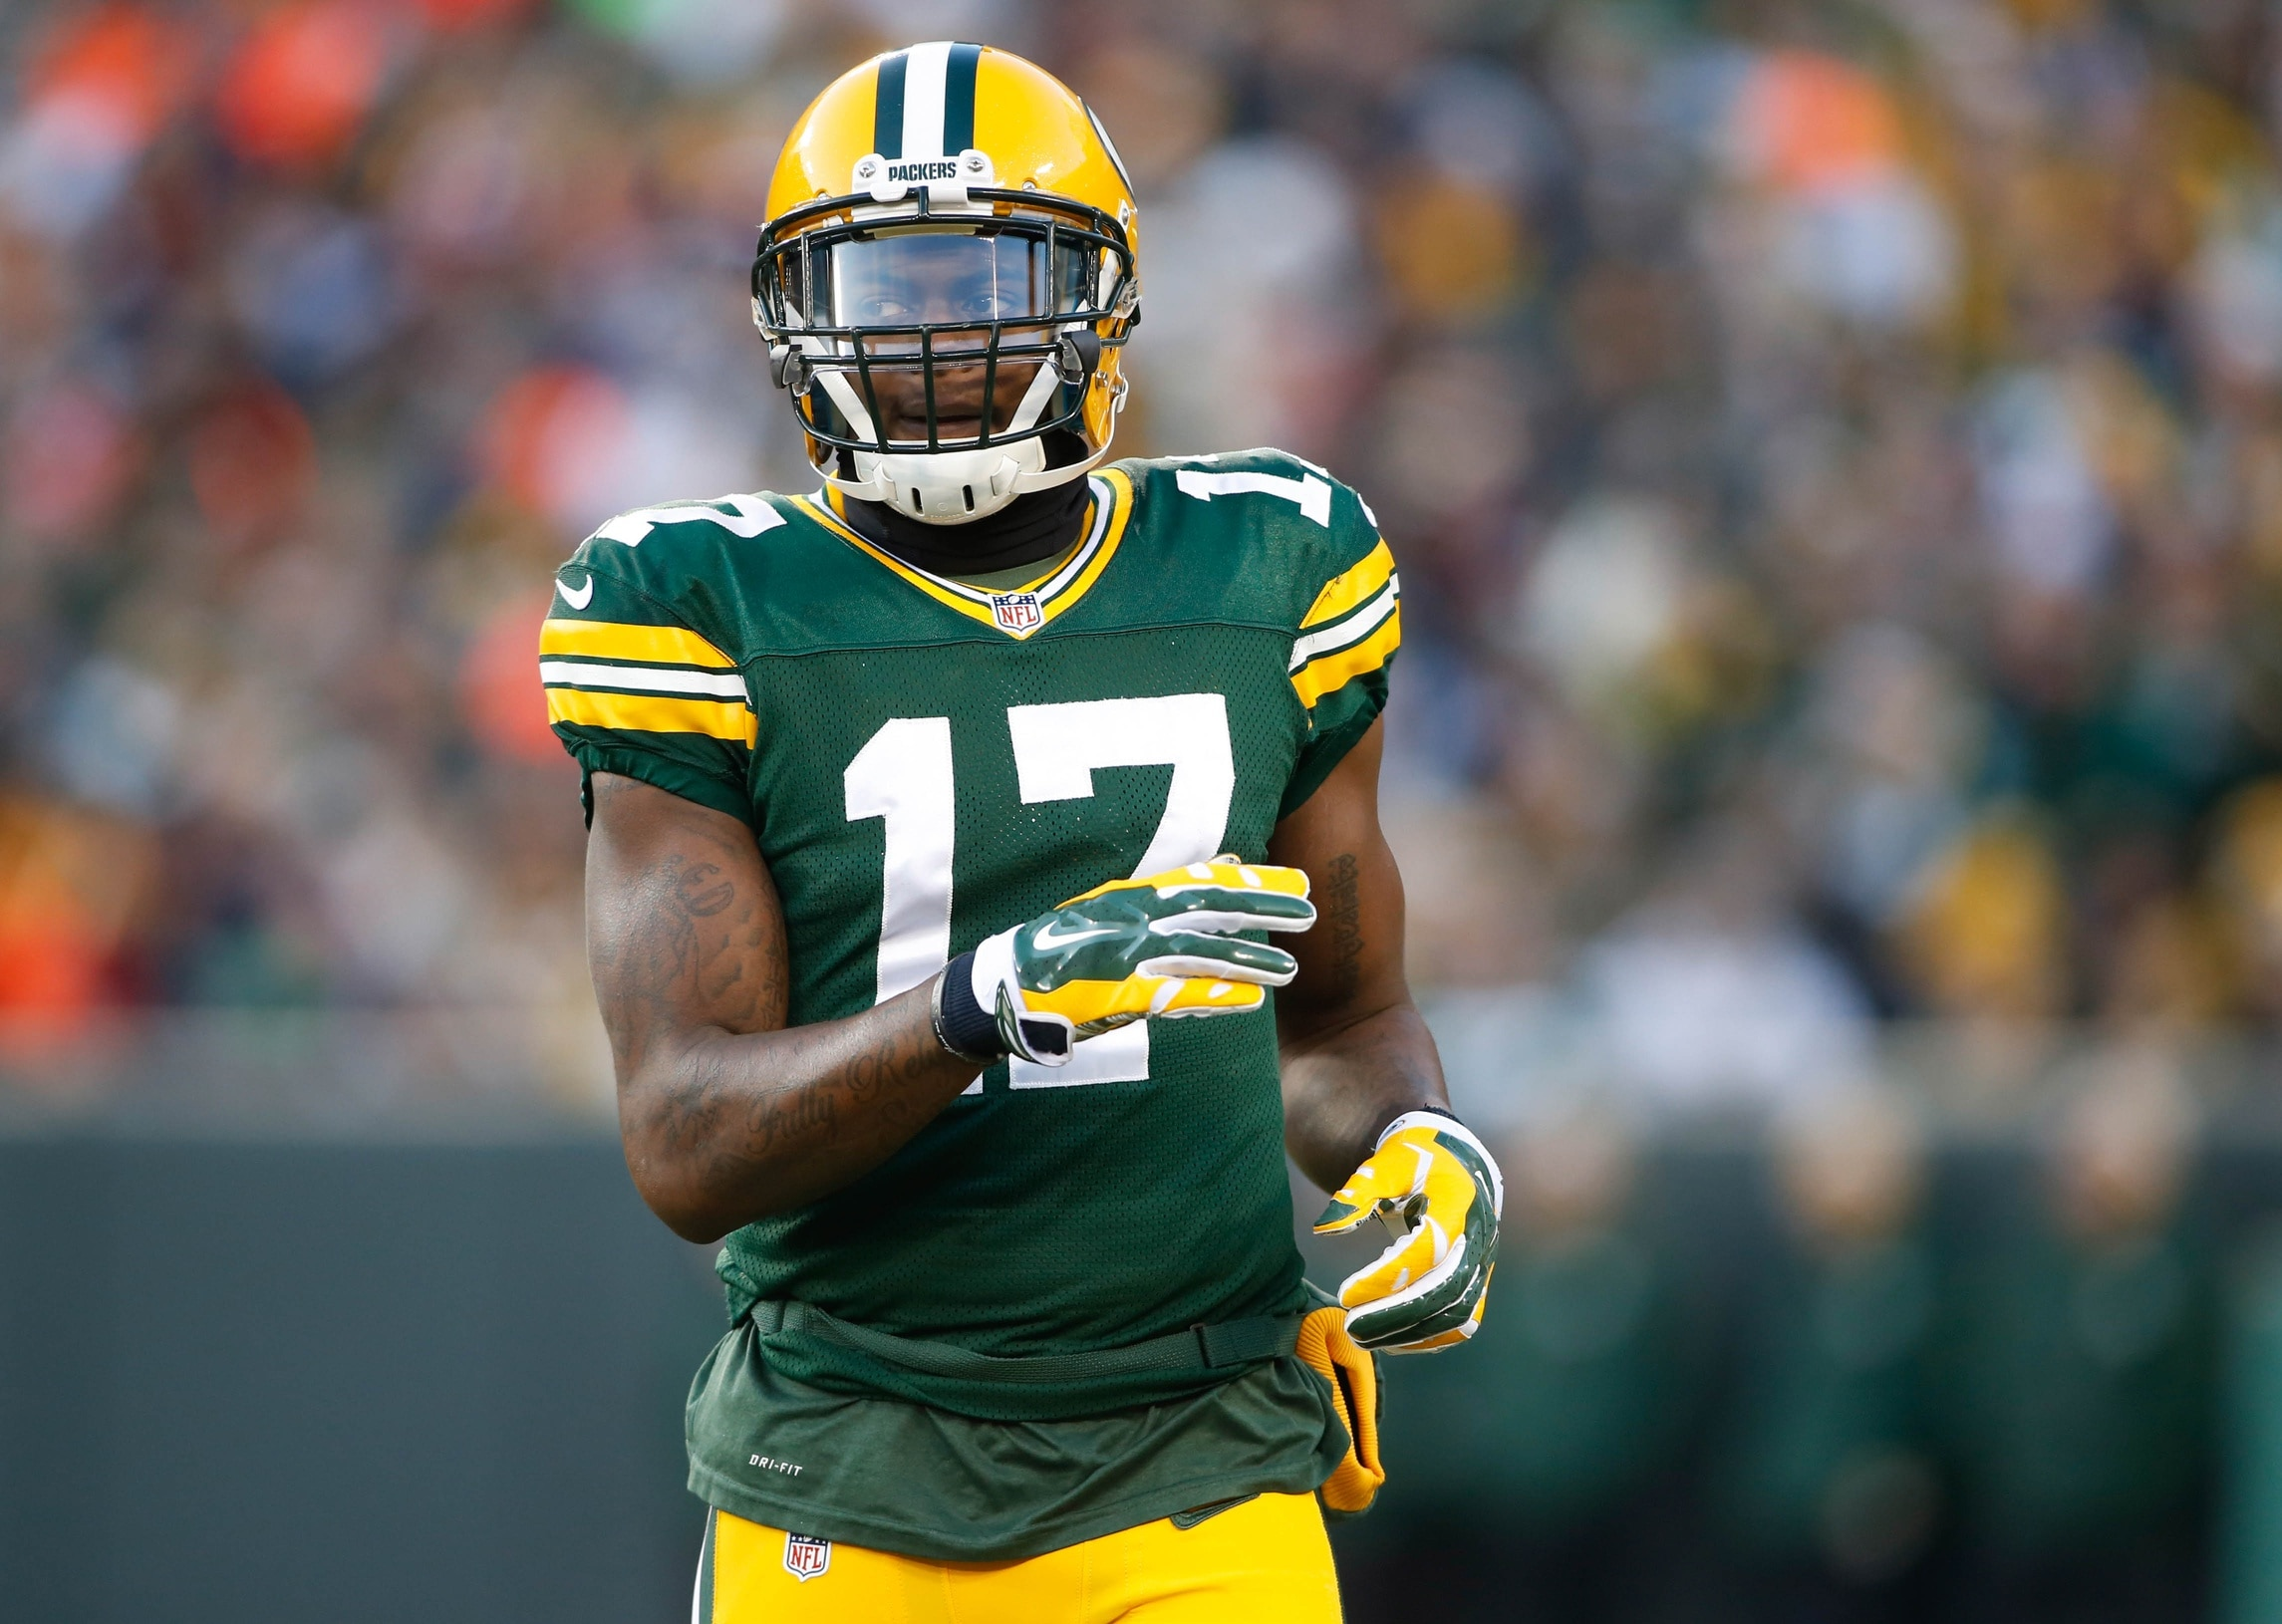 All Nfl Football Players: 7 NFL Players Ready To Make Their Names Known In 2015